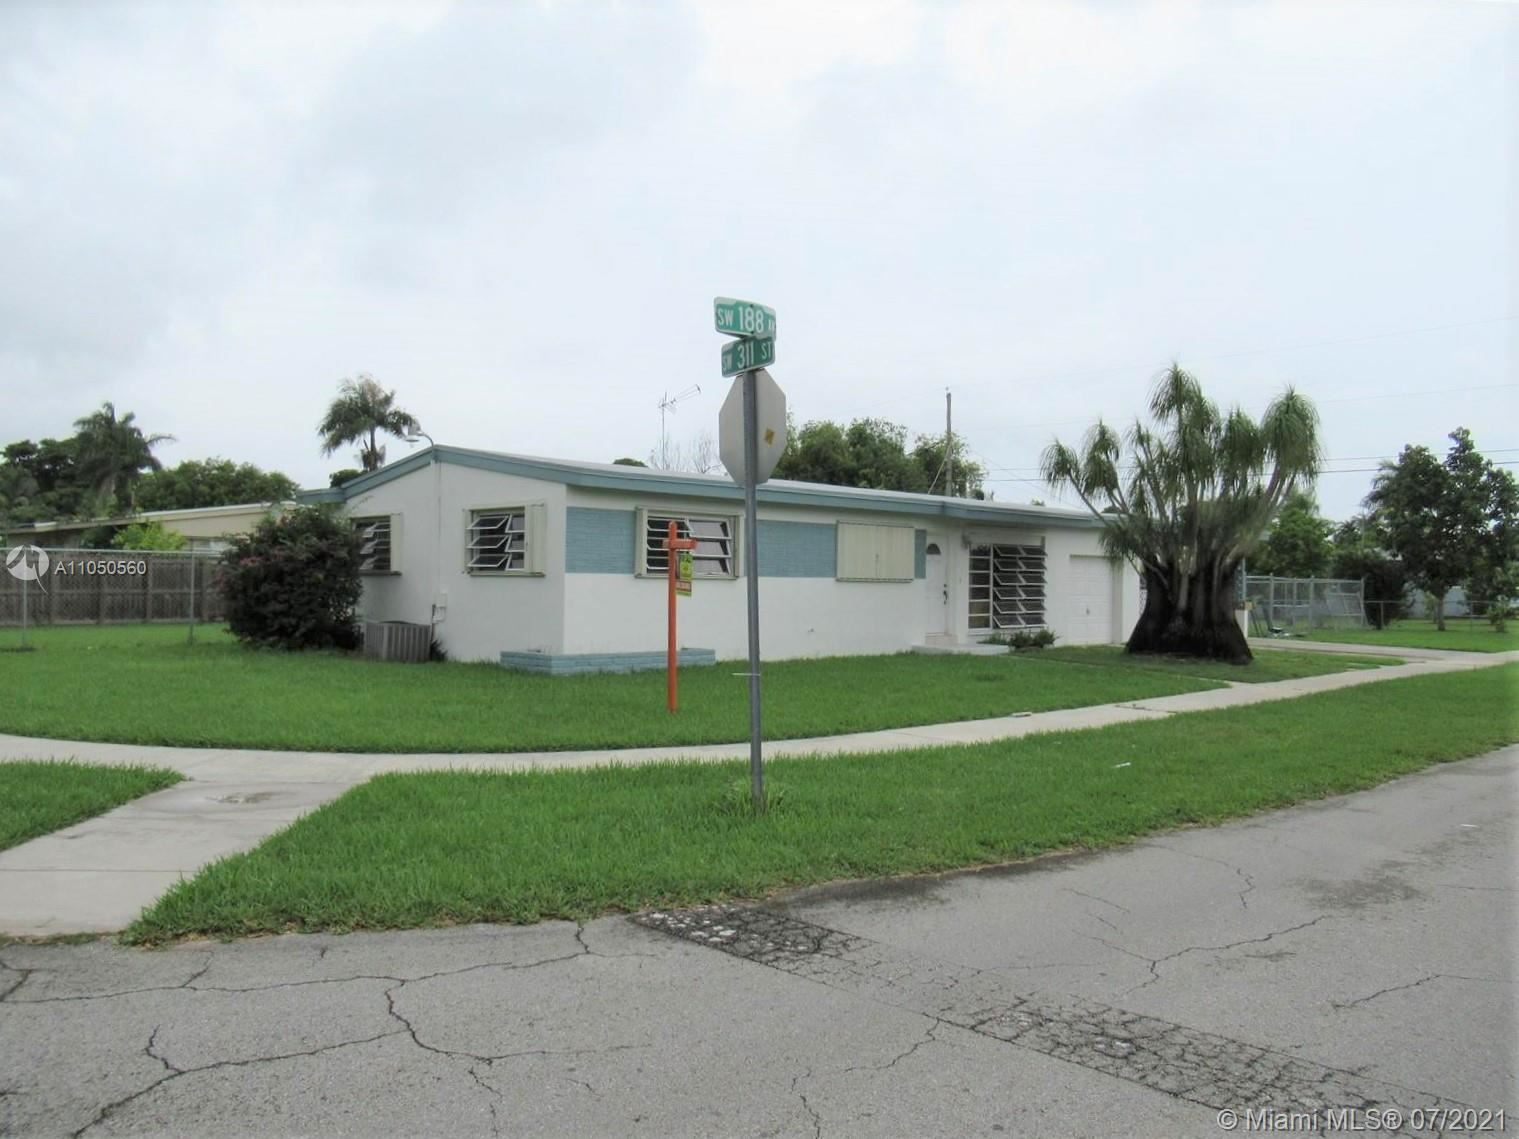 900 NW 16 Ave, Homestead, FL 33030 - #: A11050560